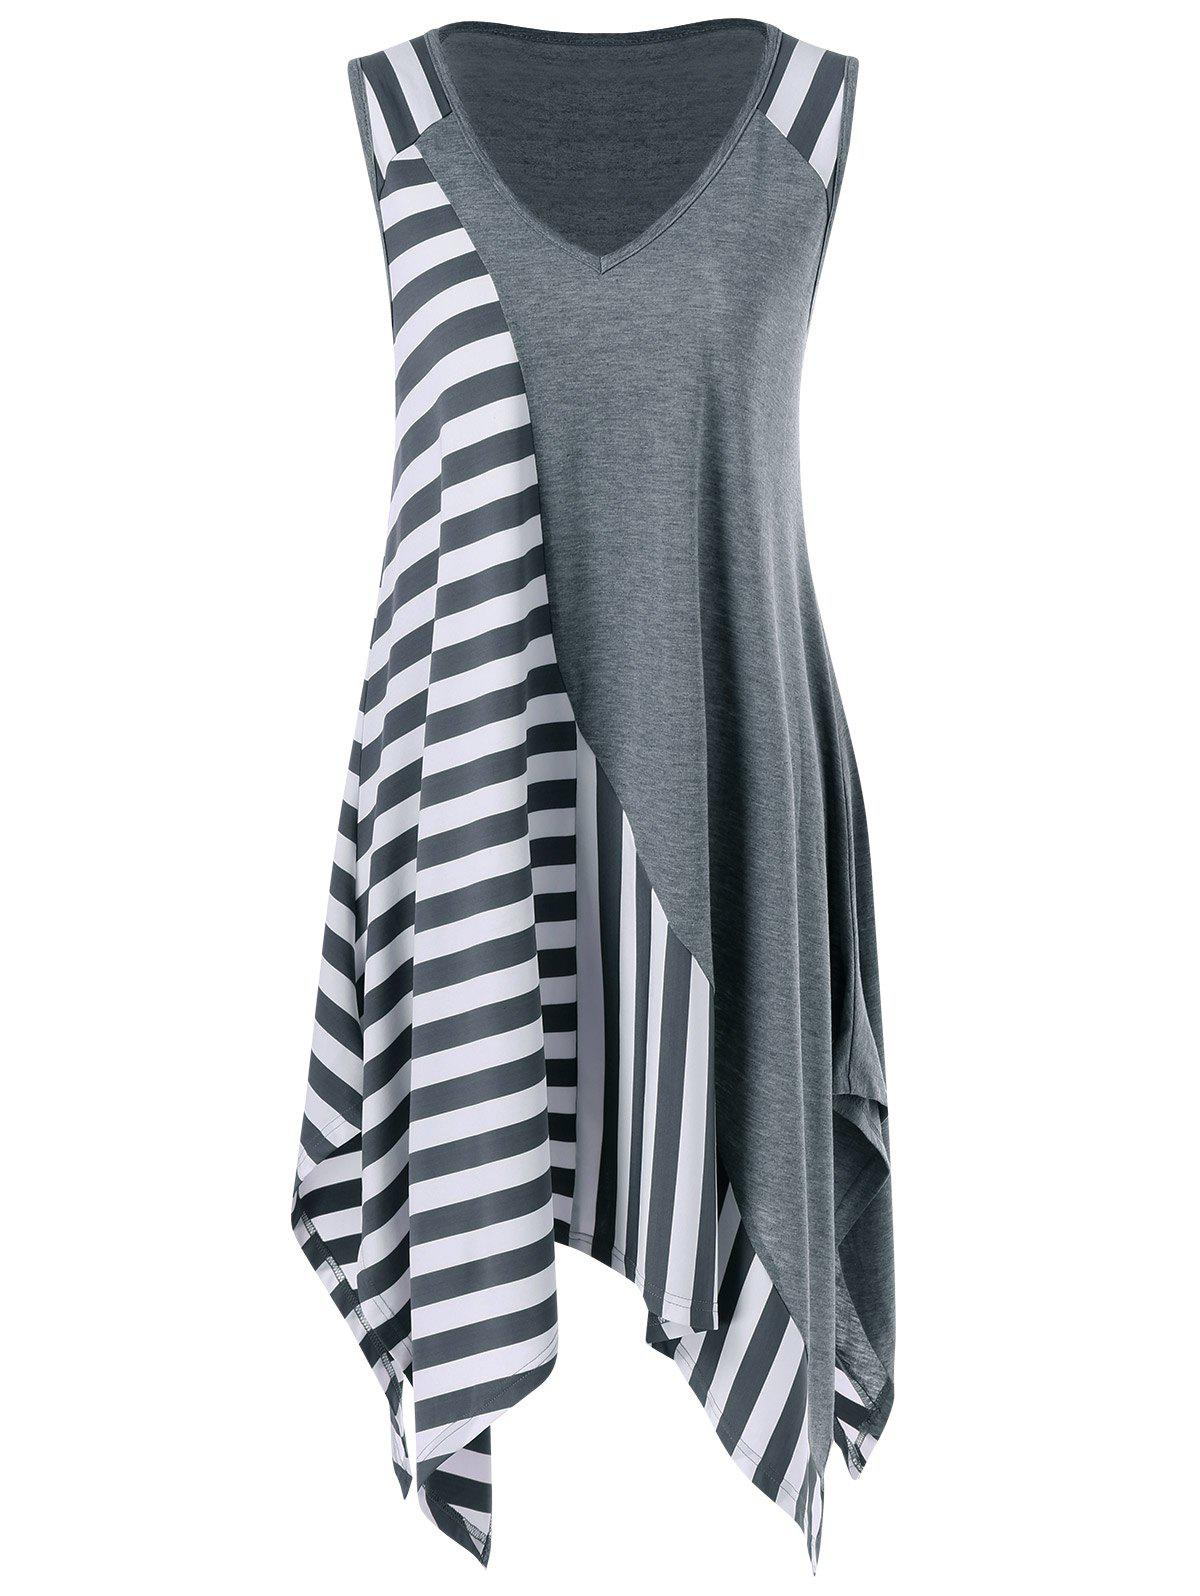 Striped Long Handkerchief Sleeveless Flowy T-Shirt - GREY/WHITE XL